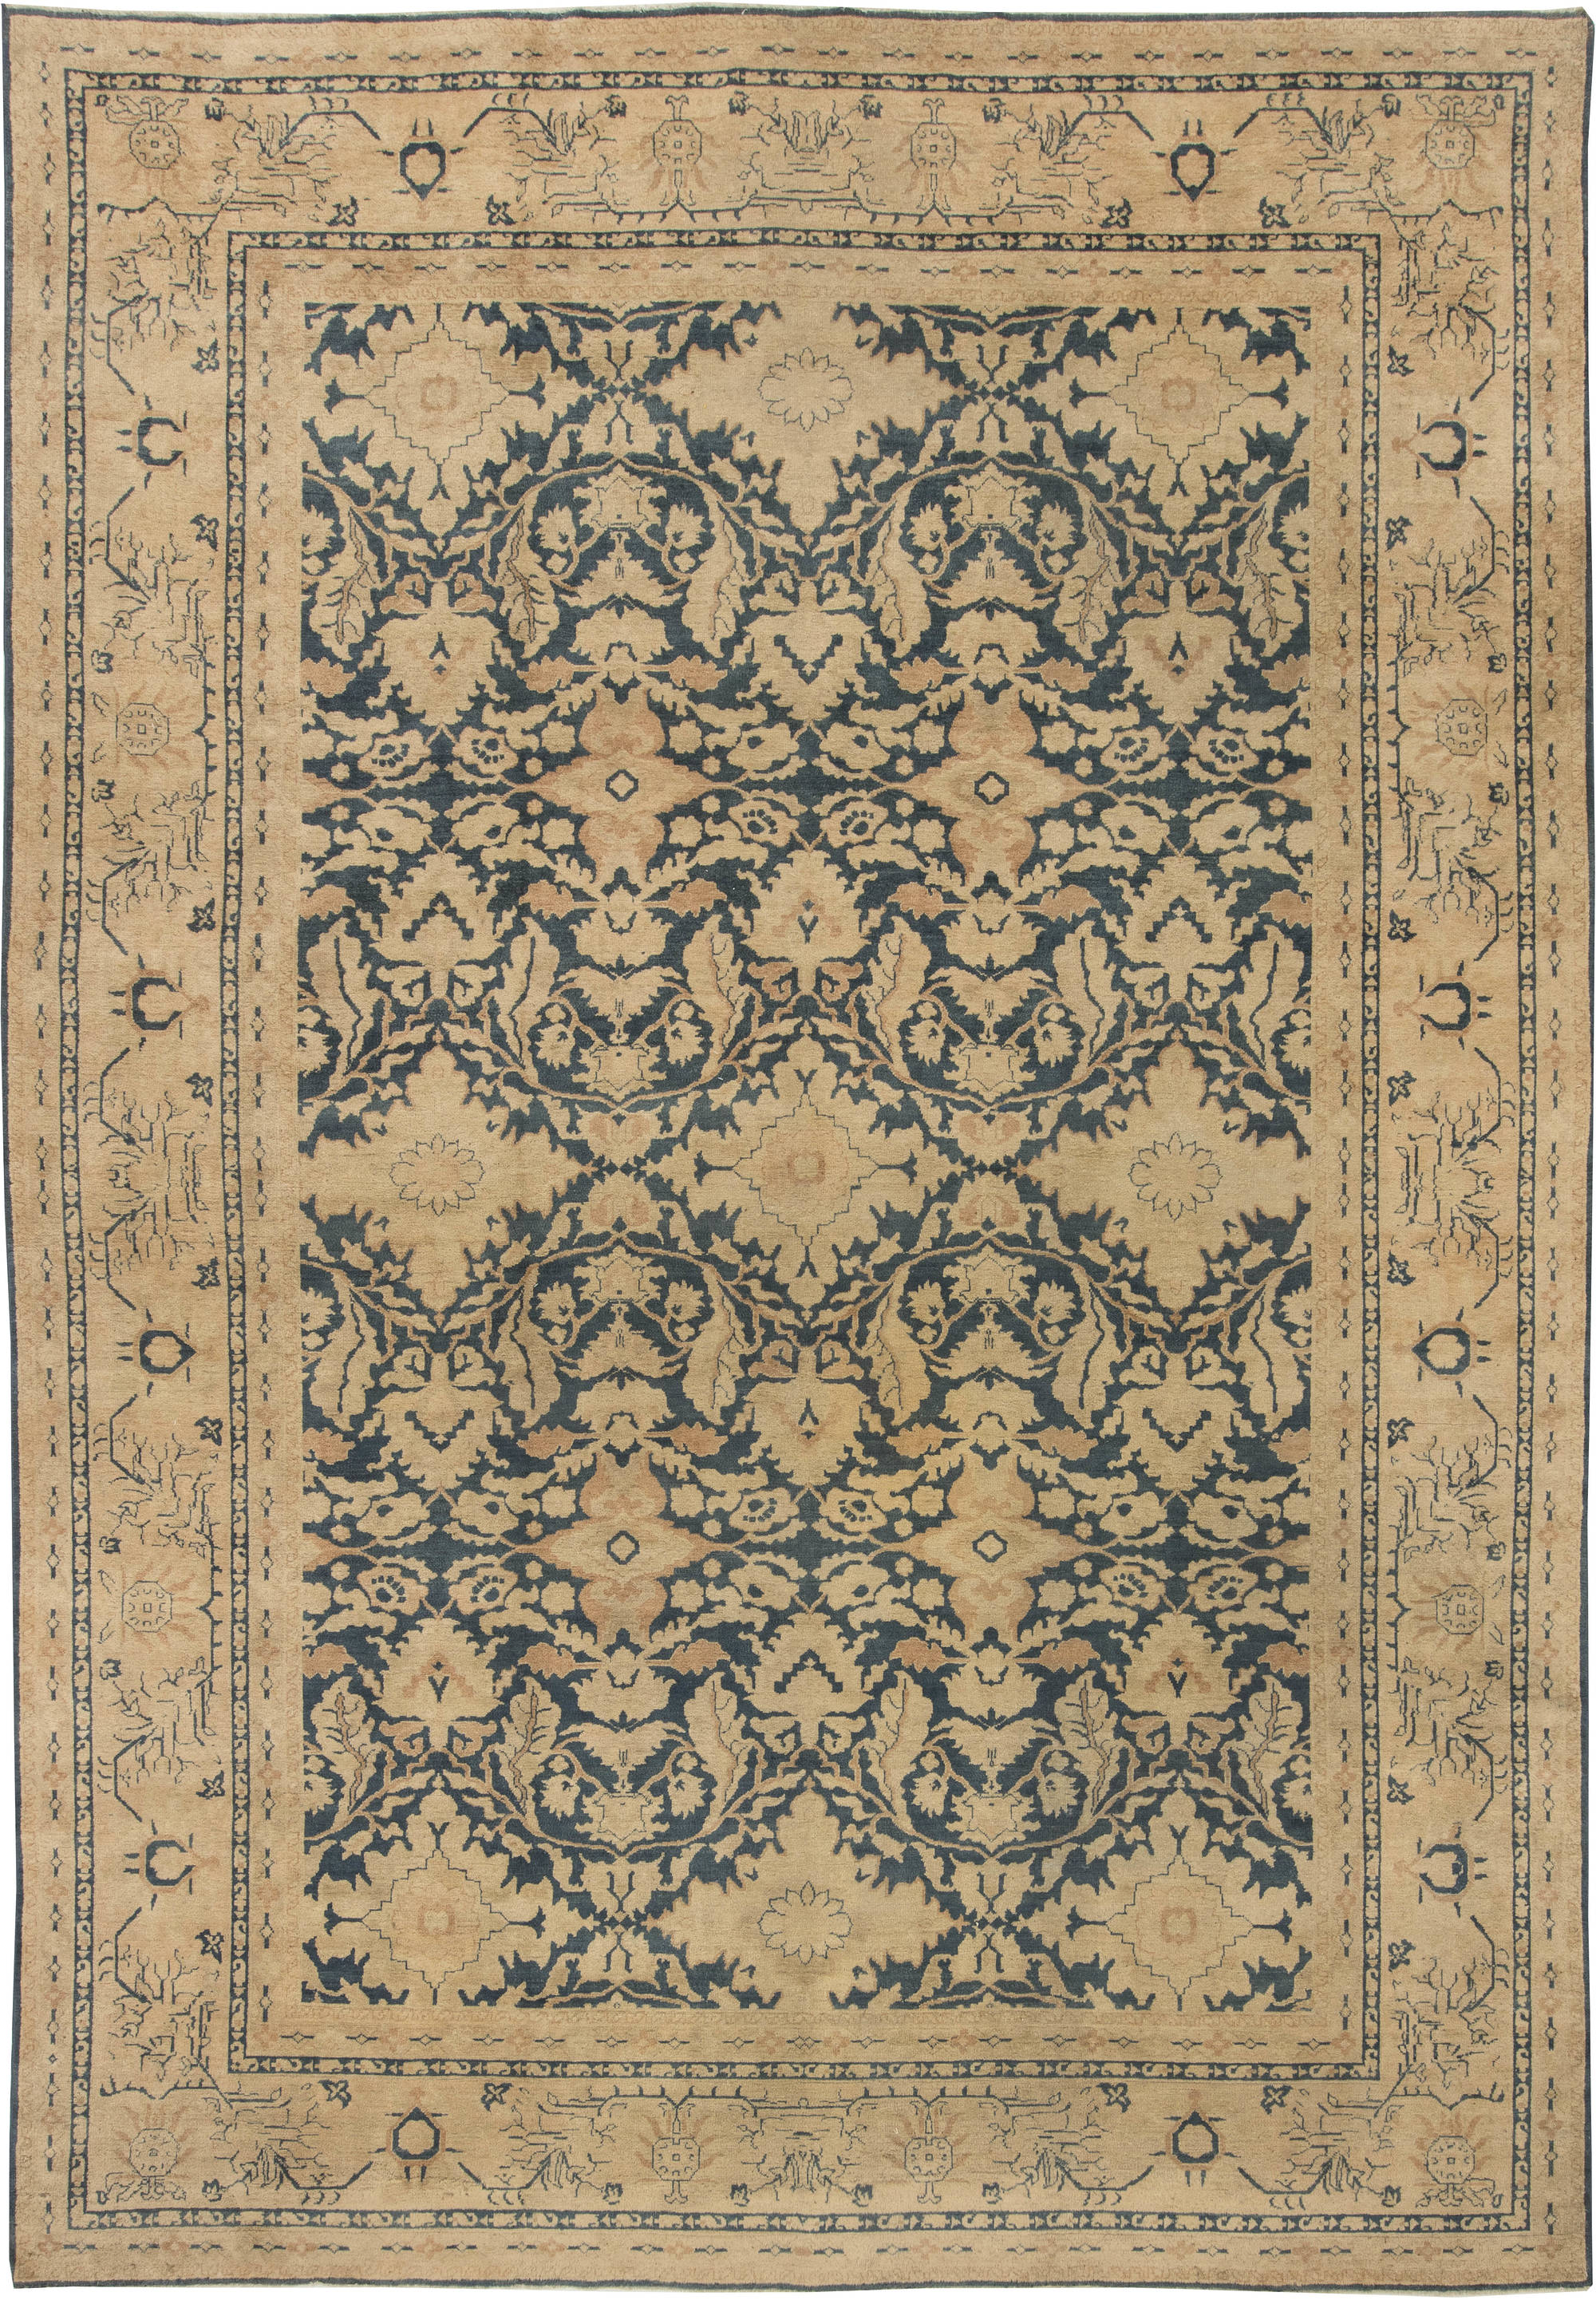 North Indian Rug Bb4039 By Doris Leslie Blau